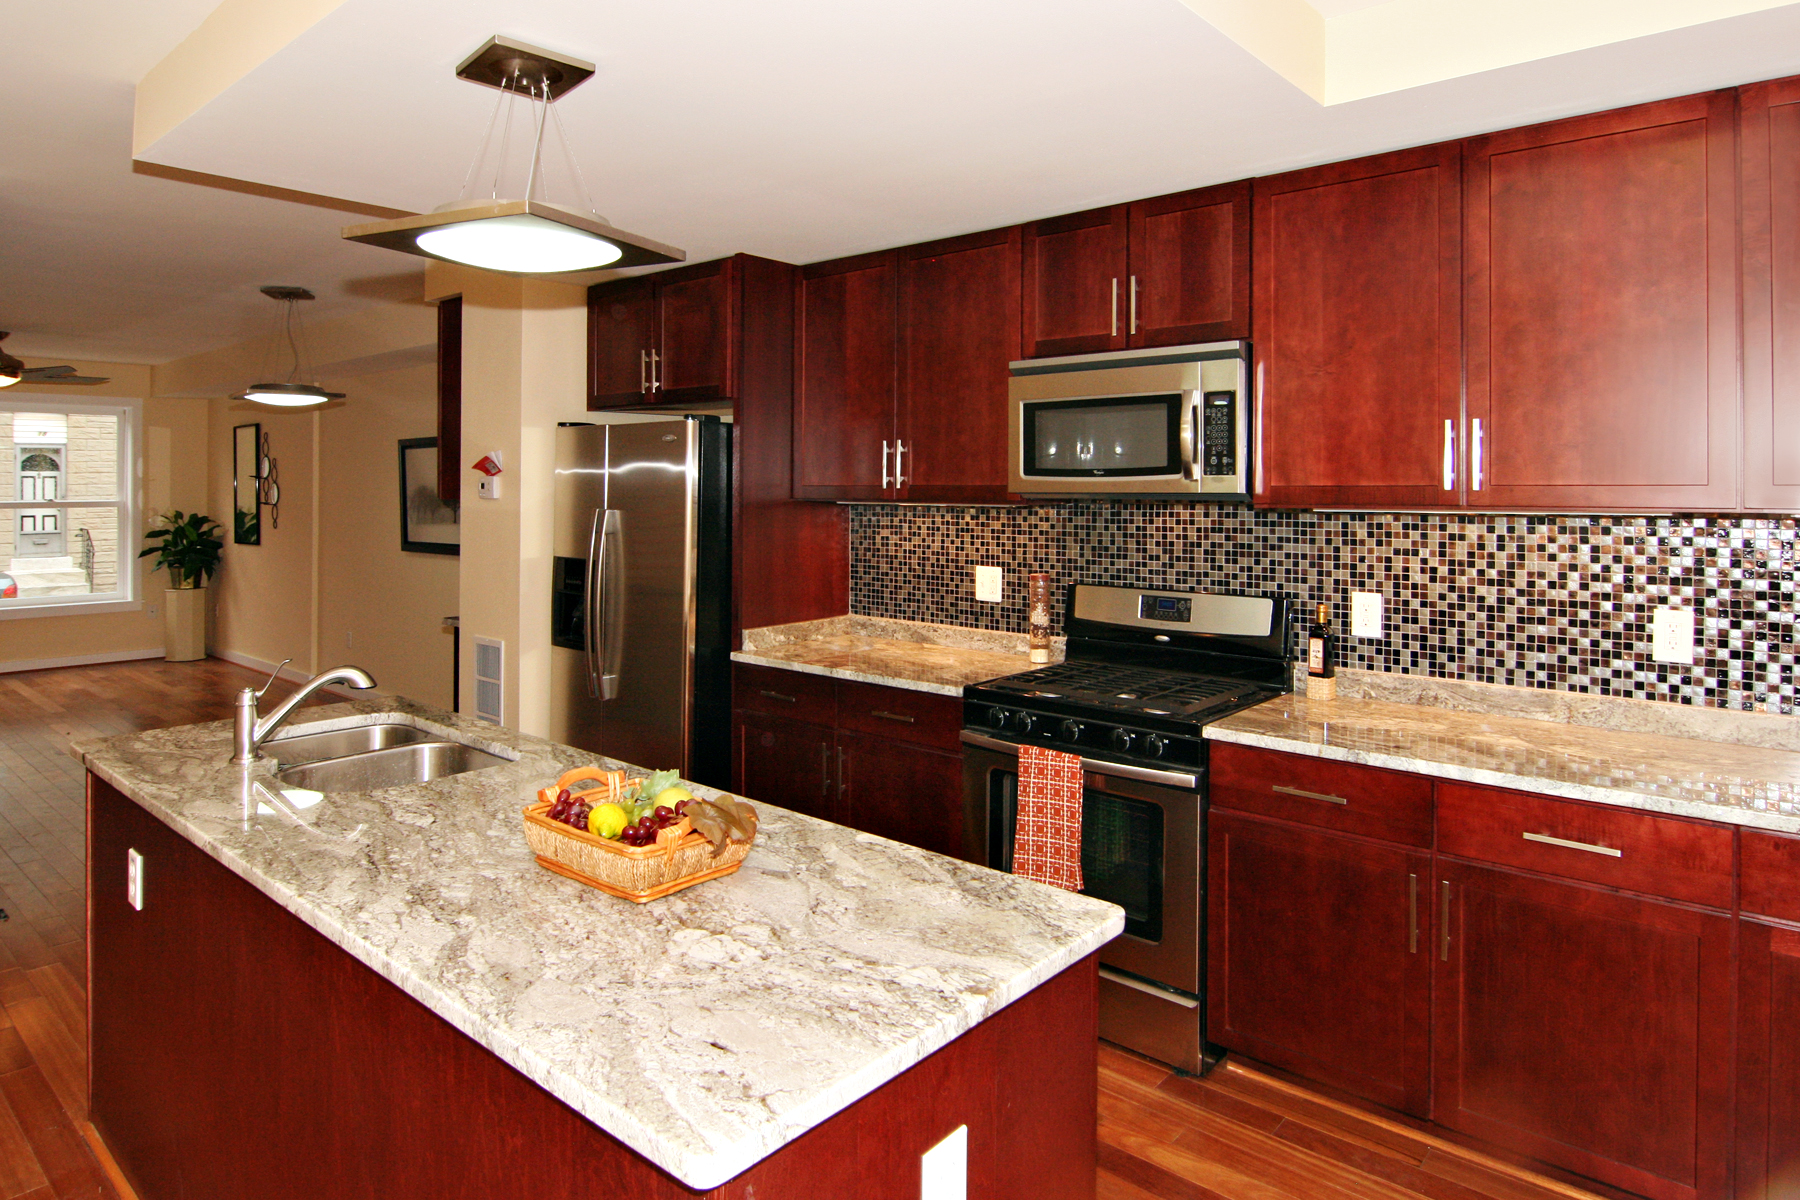 The Benefits Of Using Cherry Cabinets